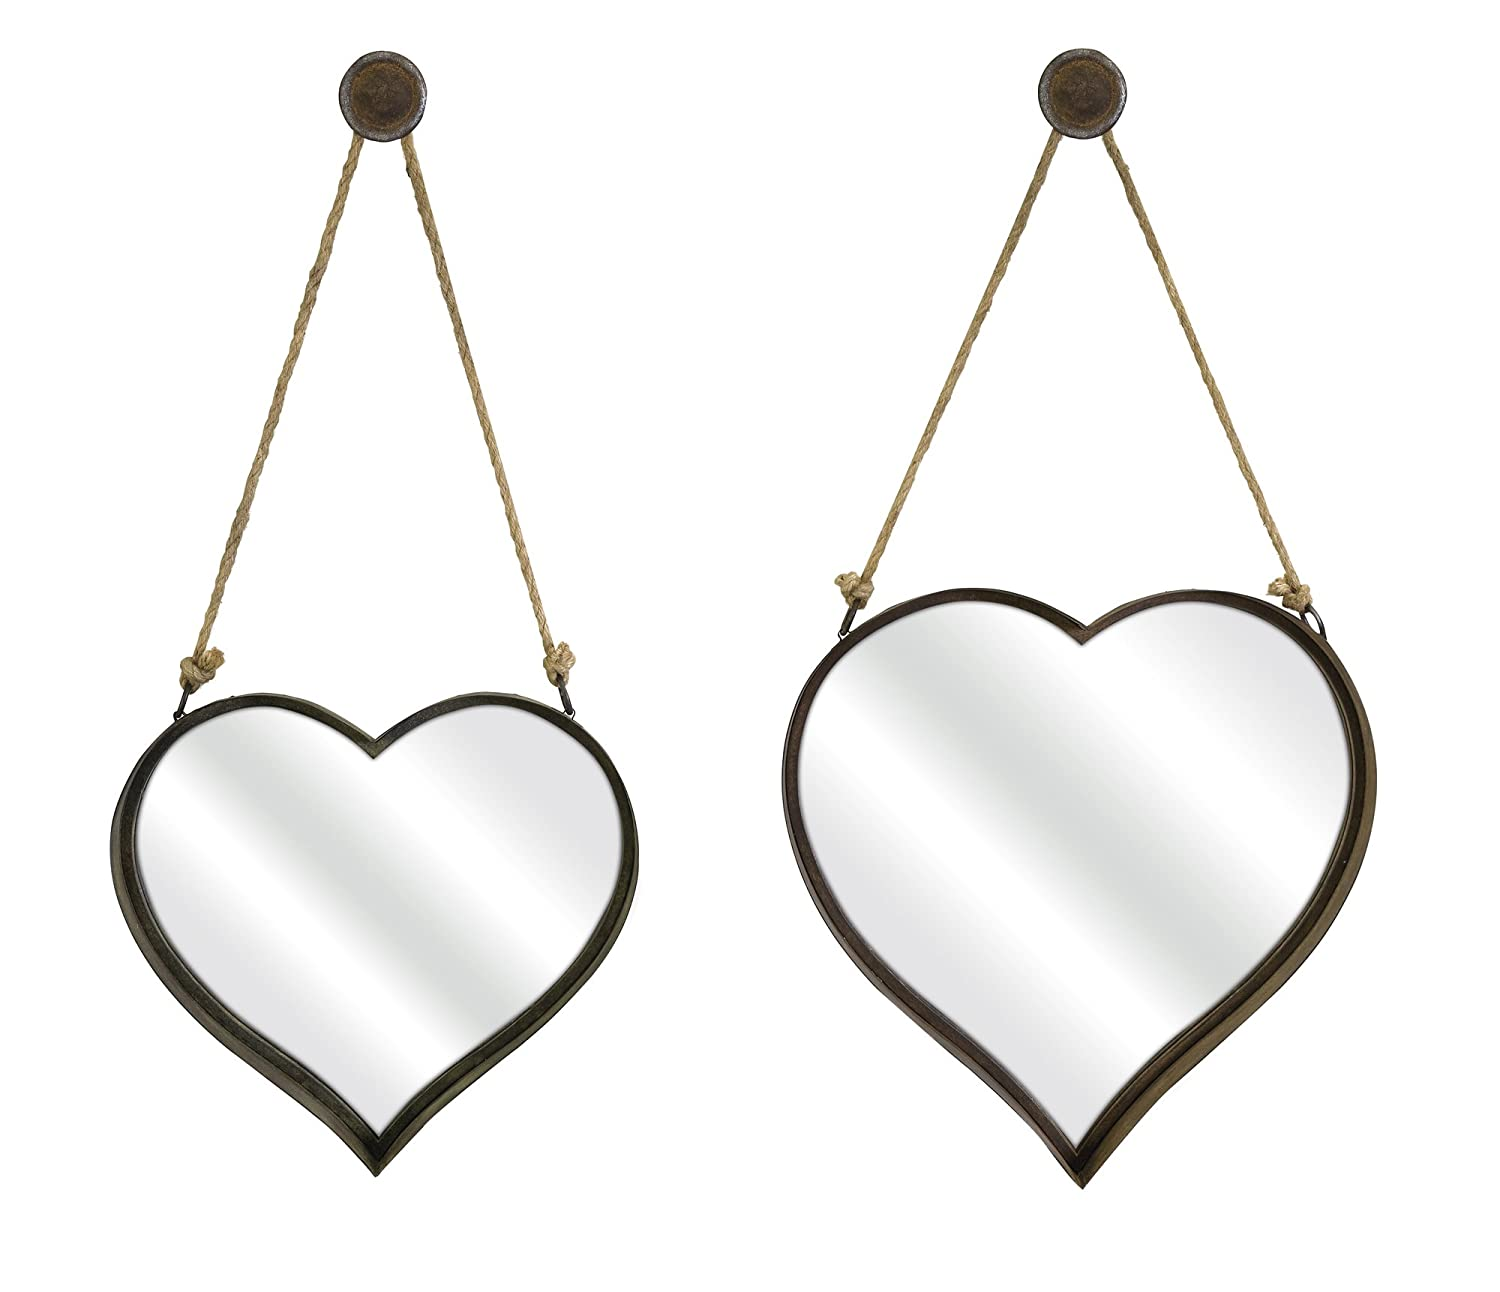 IMAX 87402-2 Heart Shape Wall Mirror, Set of 2